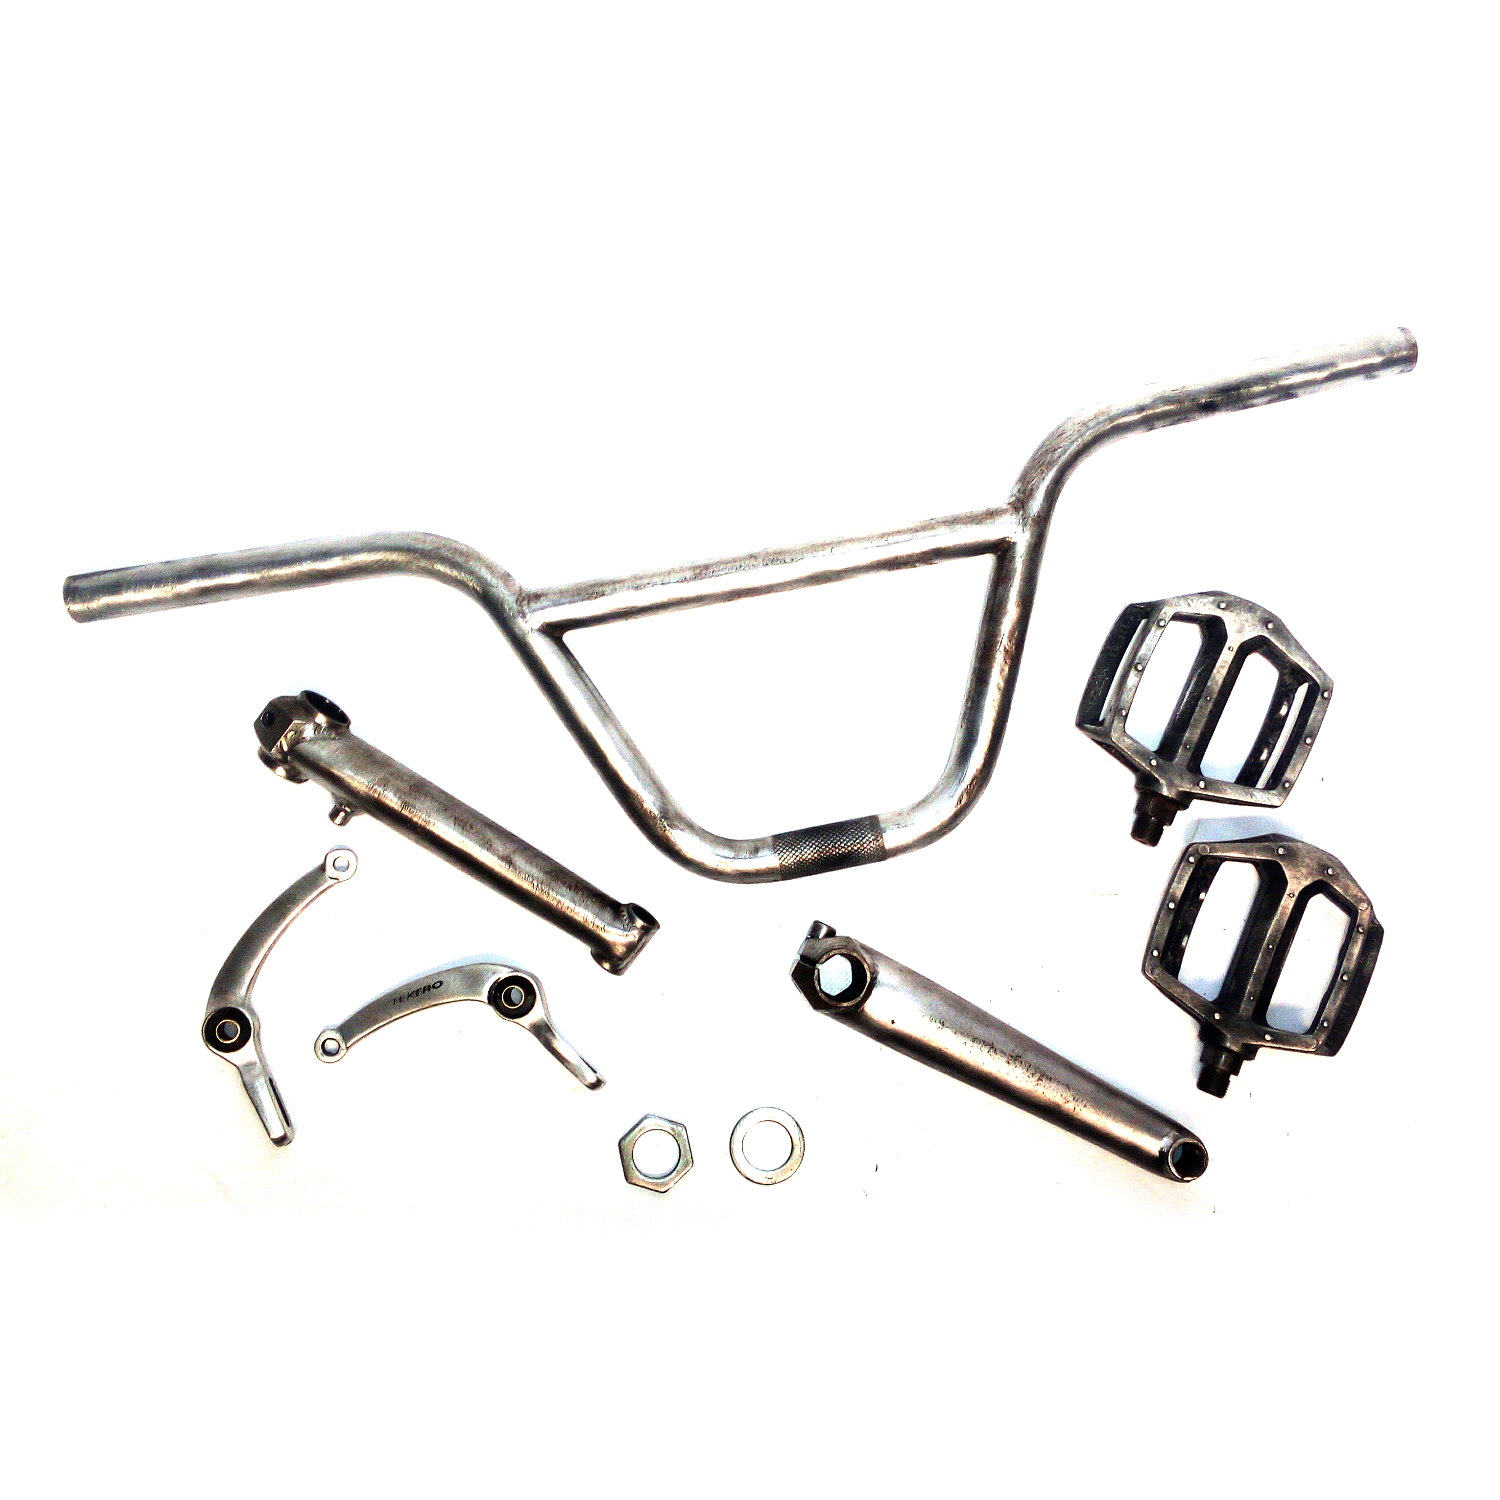 Wire Brushed Raw Steel BMX Parts